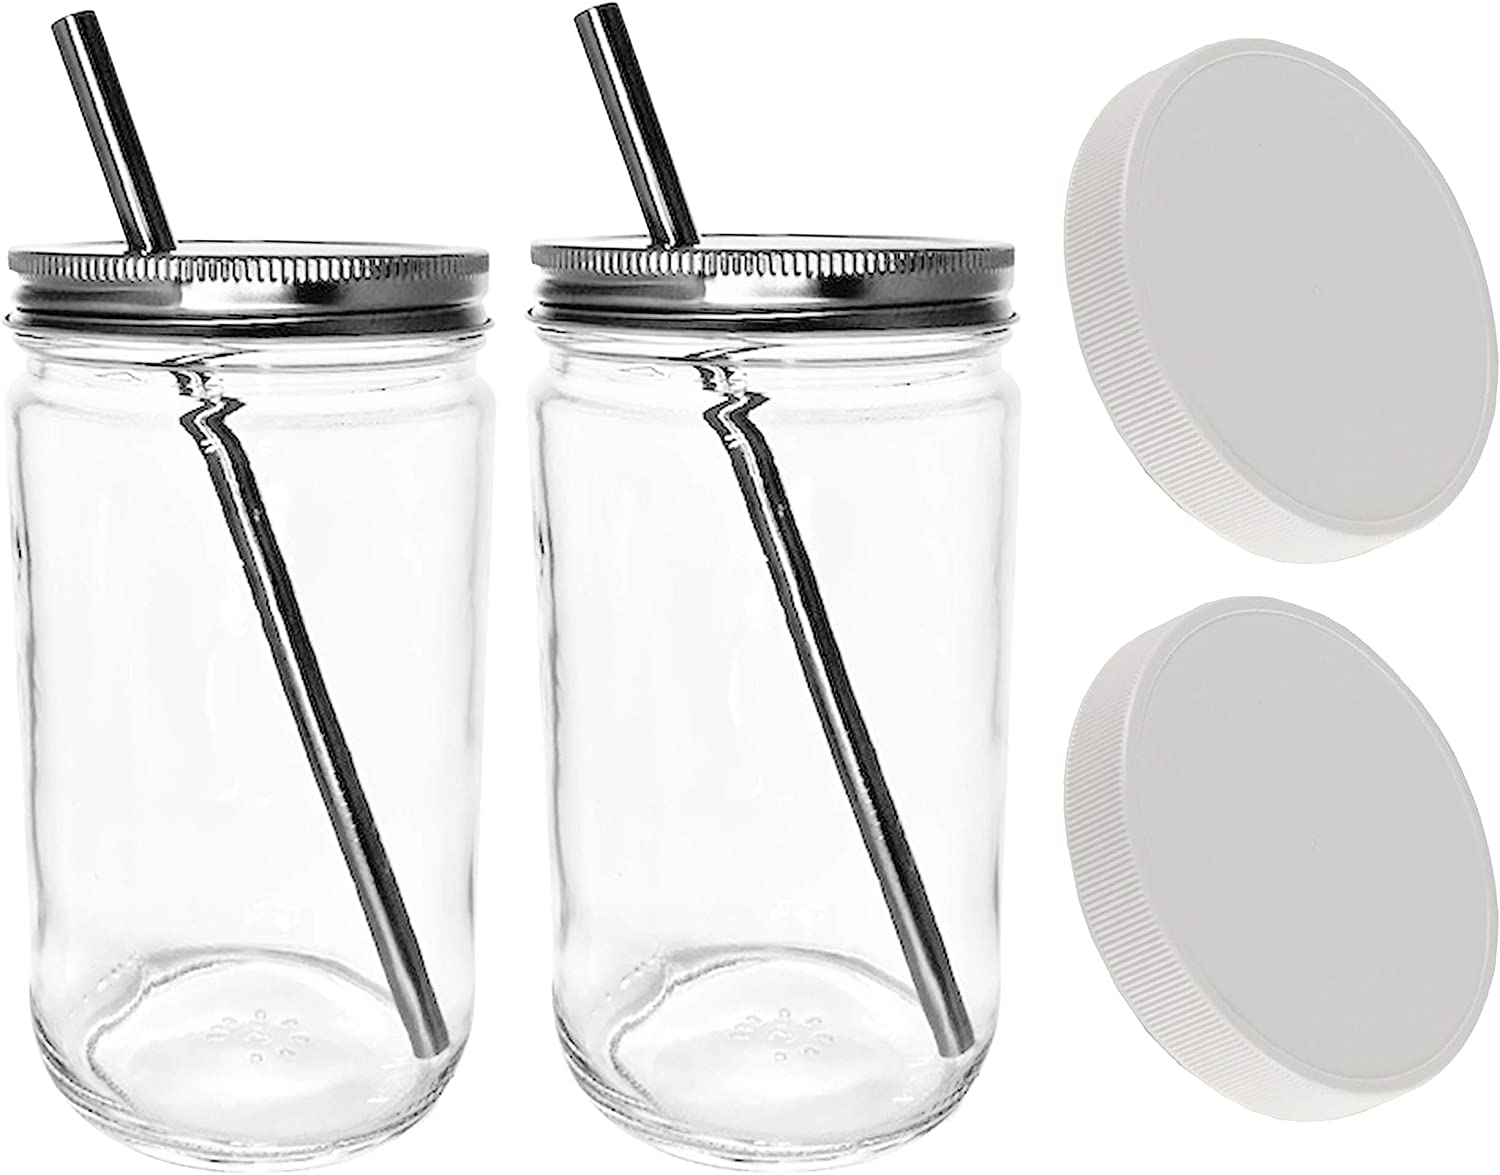 Reusable Smoothie Cup Extra Wide Mouth Glass Mason Jar 32oz with Smoothie Stainless Steel Straw/Smoothie Cup with Lid and Straw-includes Leak Proof Cap by Jarming Collections (2)